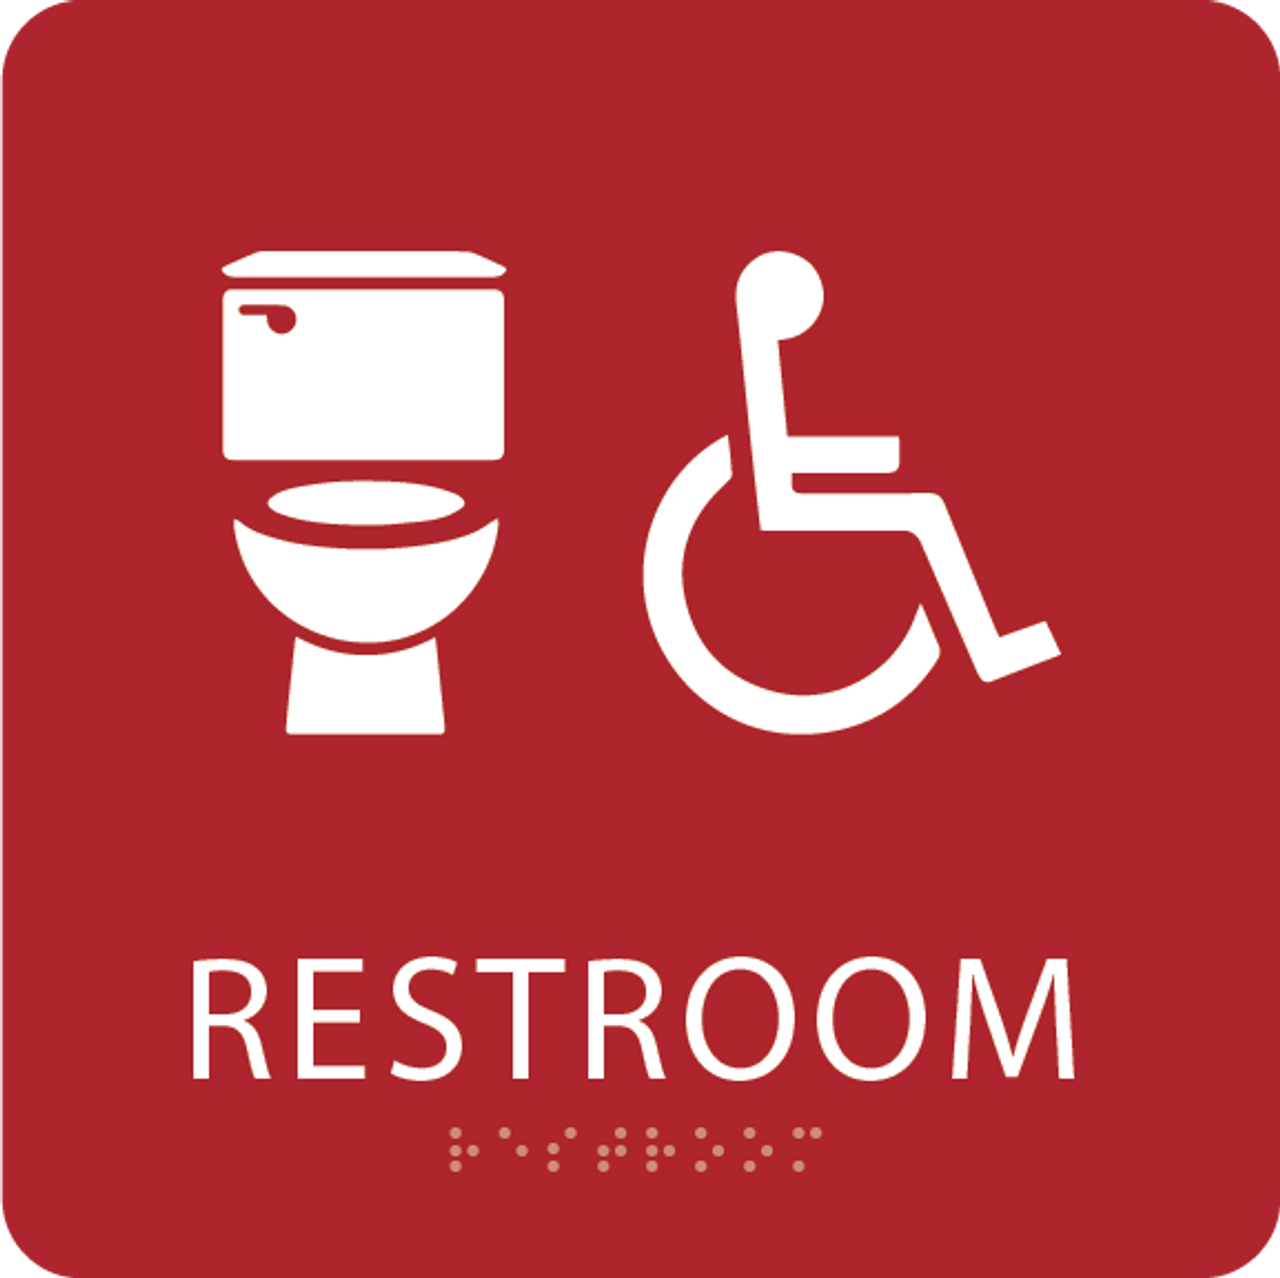 Red Accessible Toilet Sign